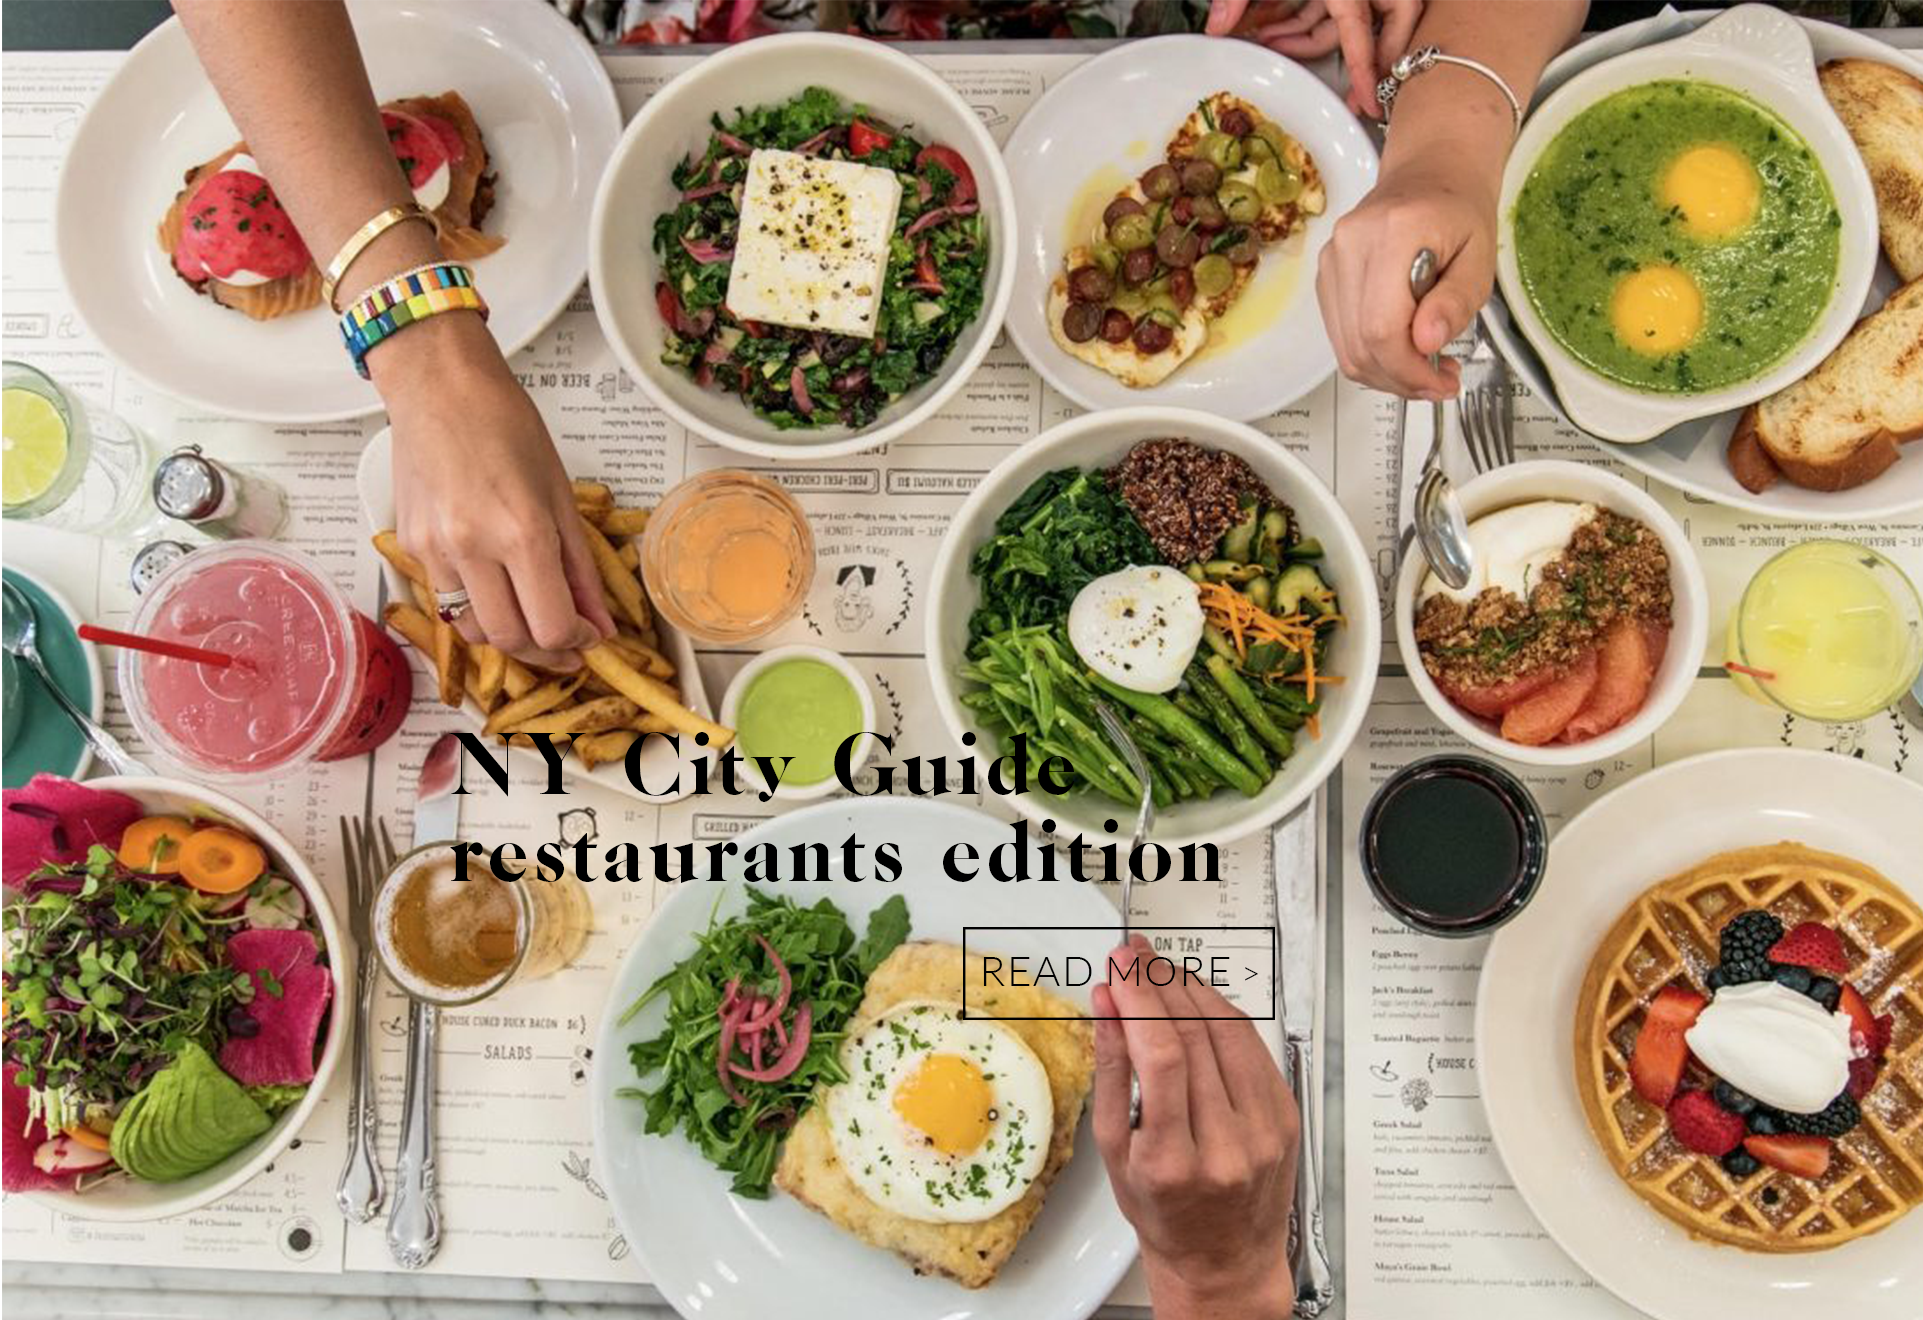 nyc guide 1 - New York Guide - Restaurants